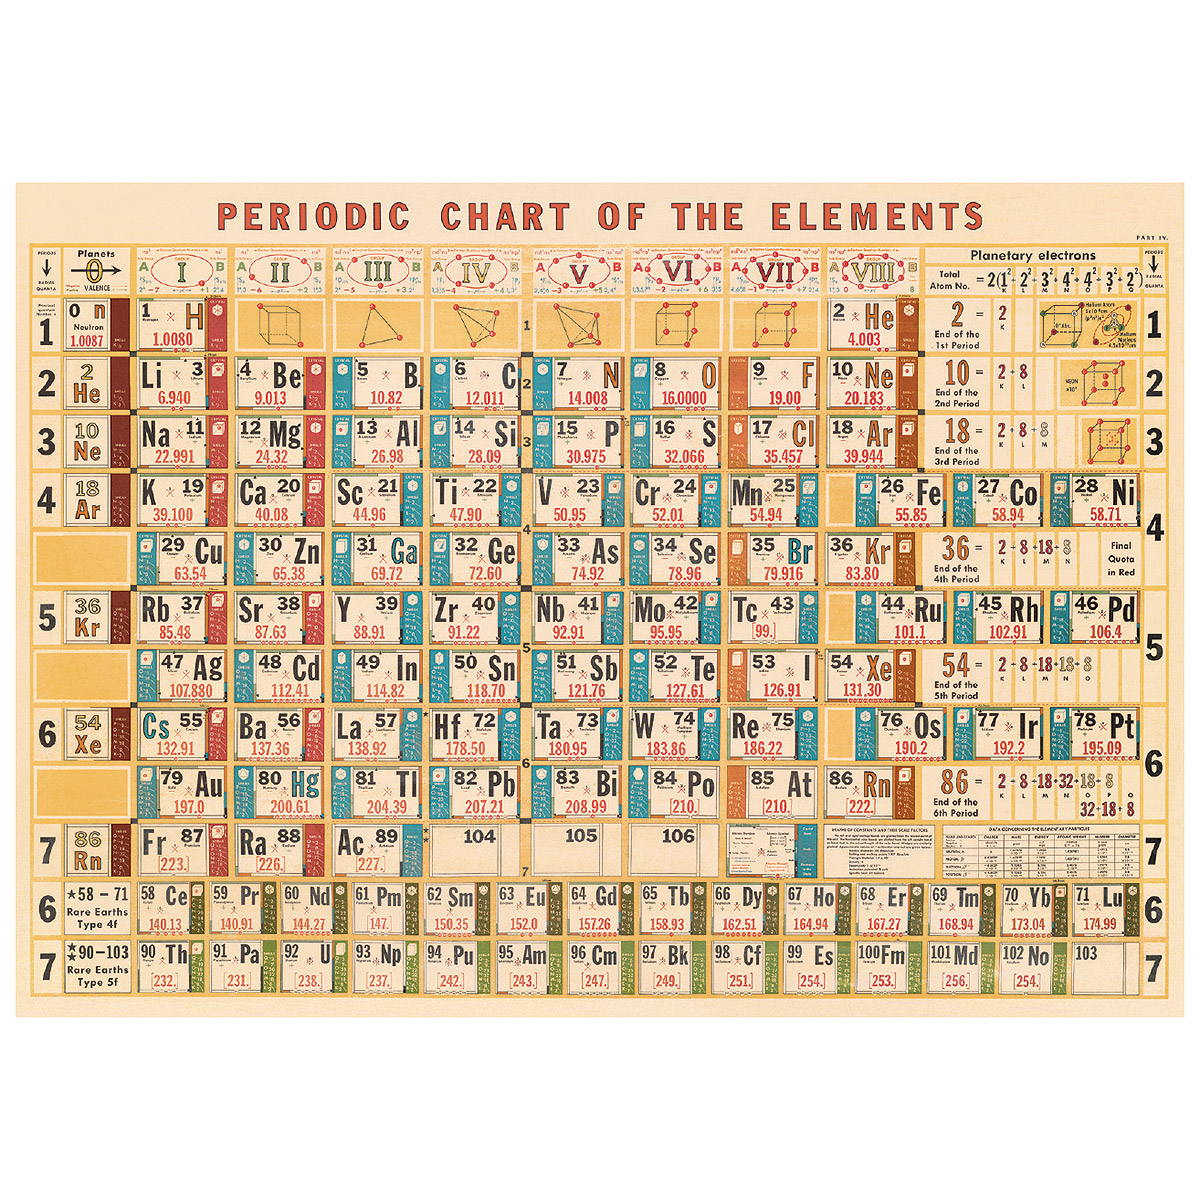 Periodic table of elements chart vintage style poster ephemera periodic table of elements chart vintage style poster ephemera urtaz Images